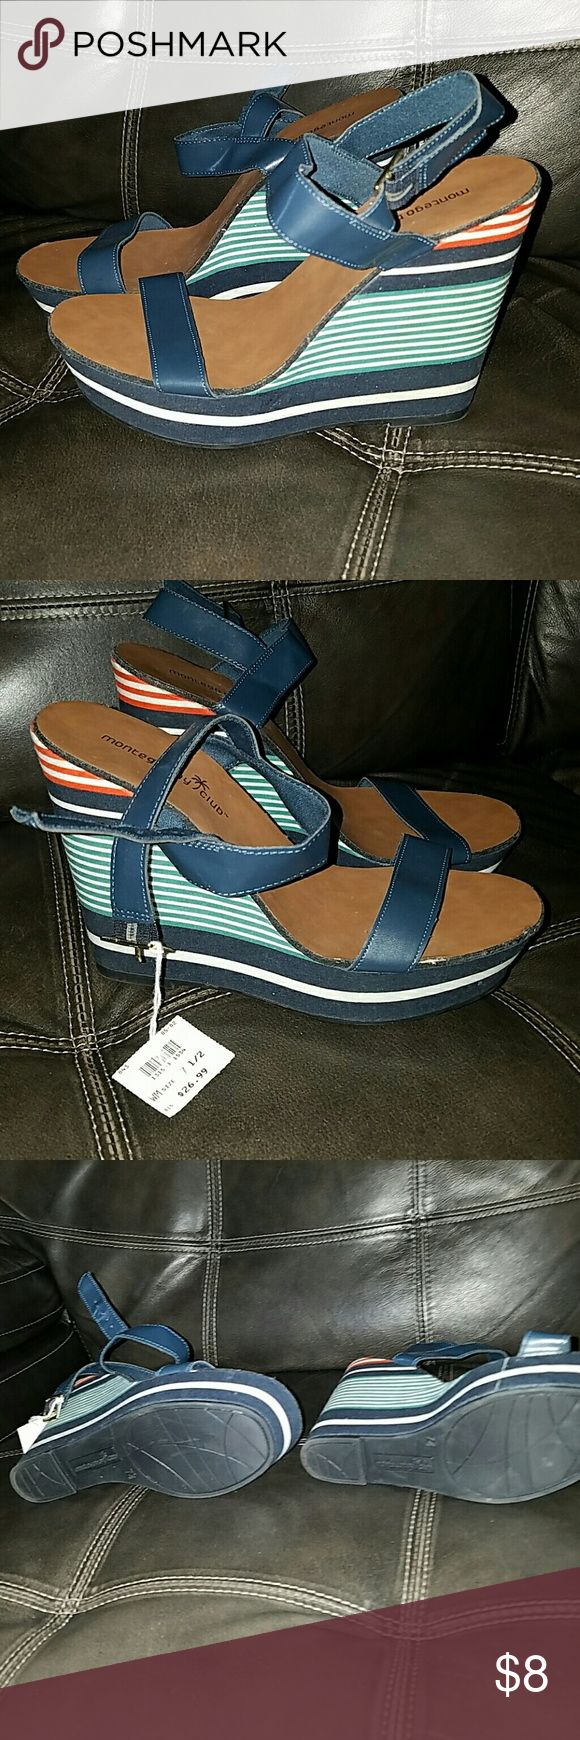 Weekend Sale Montego Bay Club wedge sandles Size 7.5 montego bay club Shoes